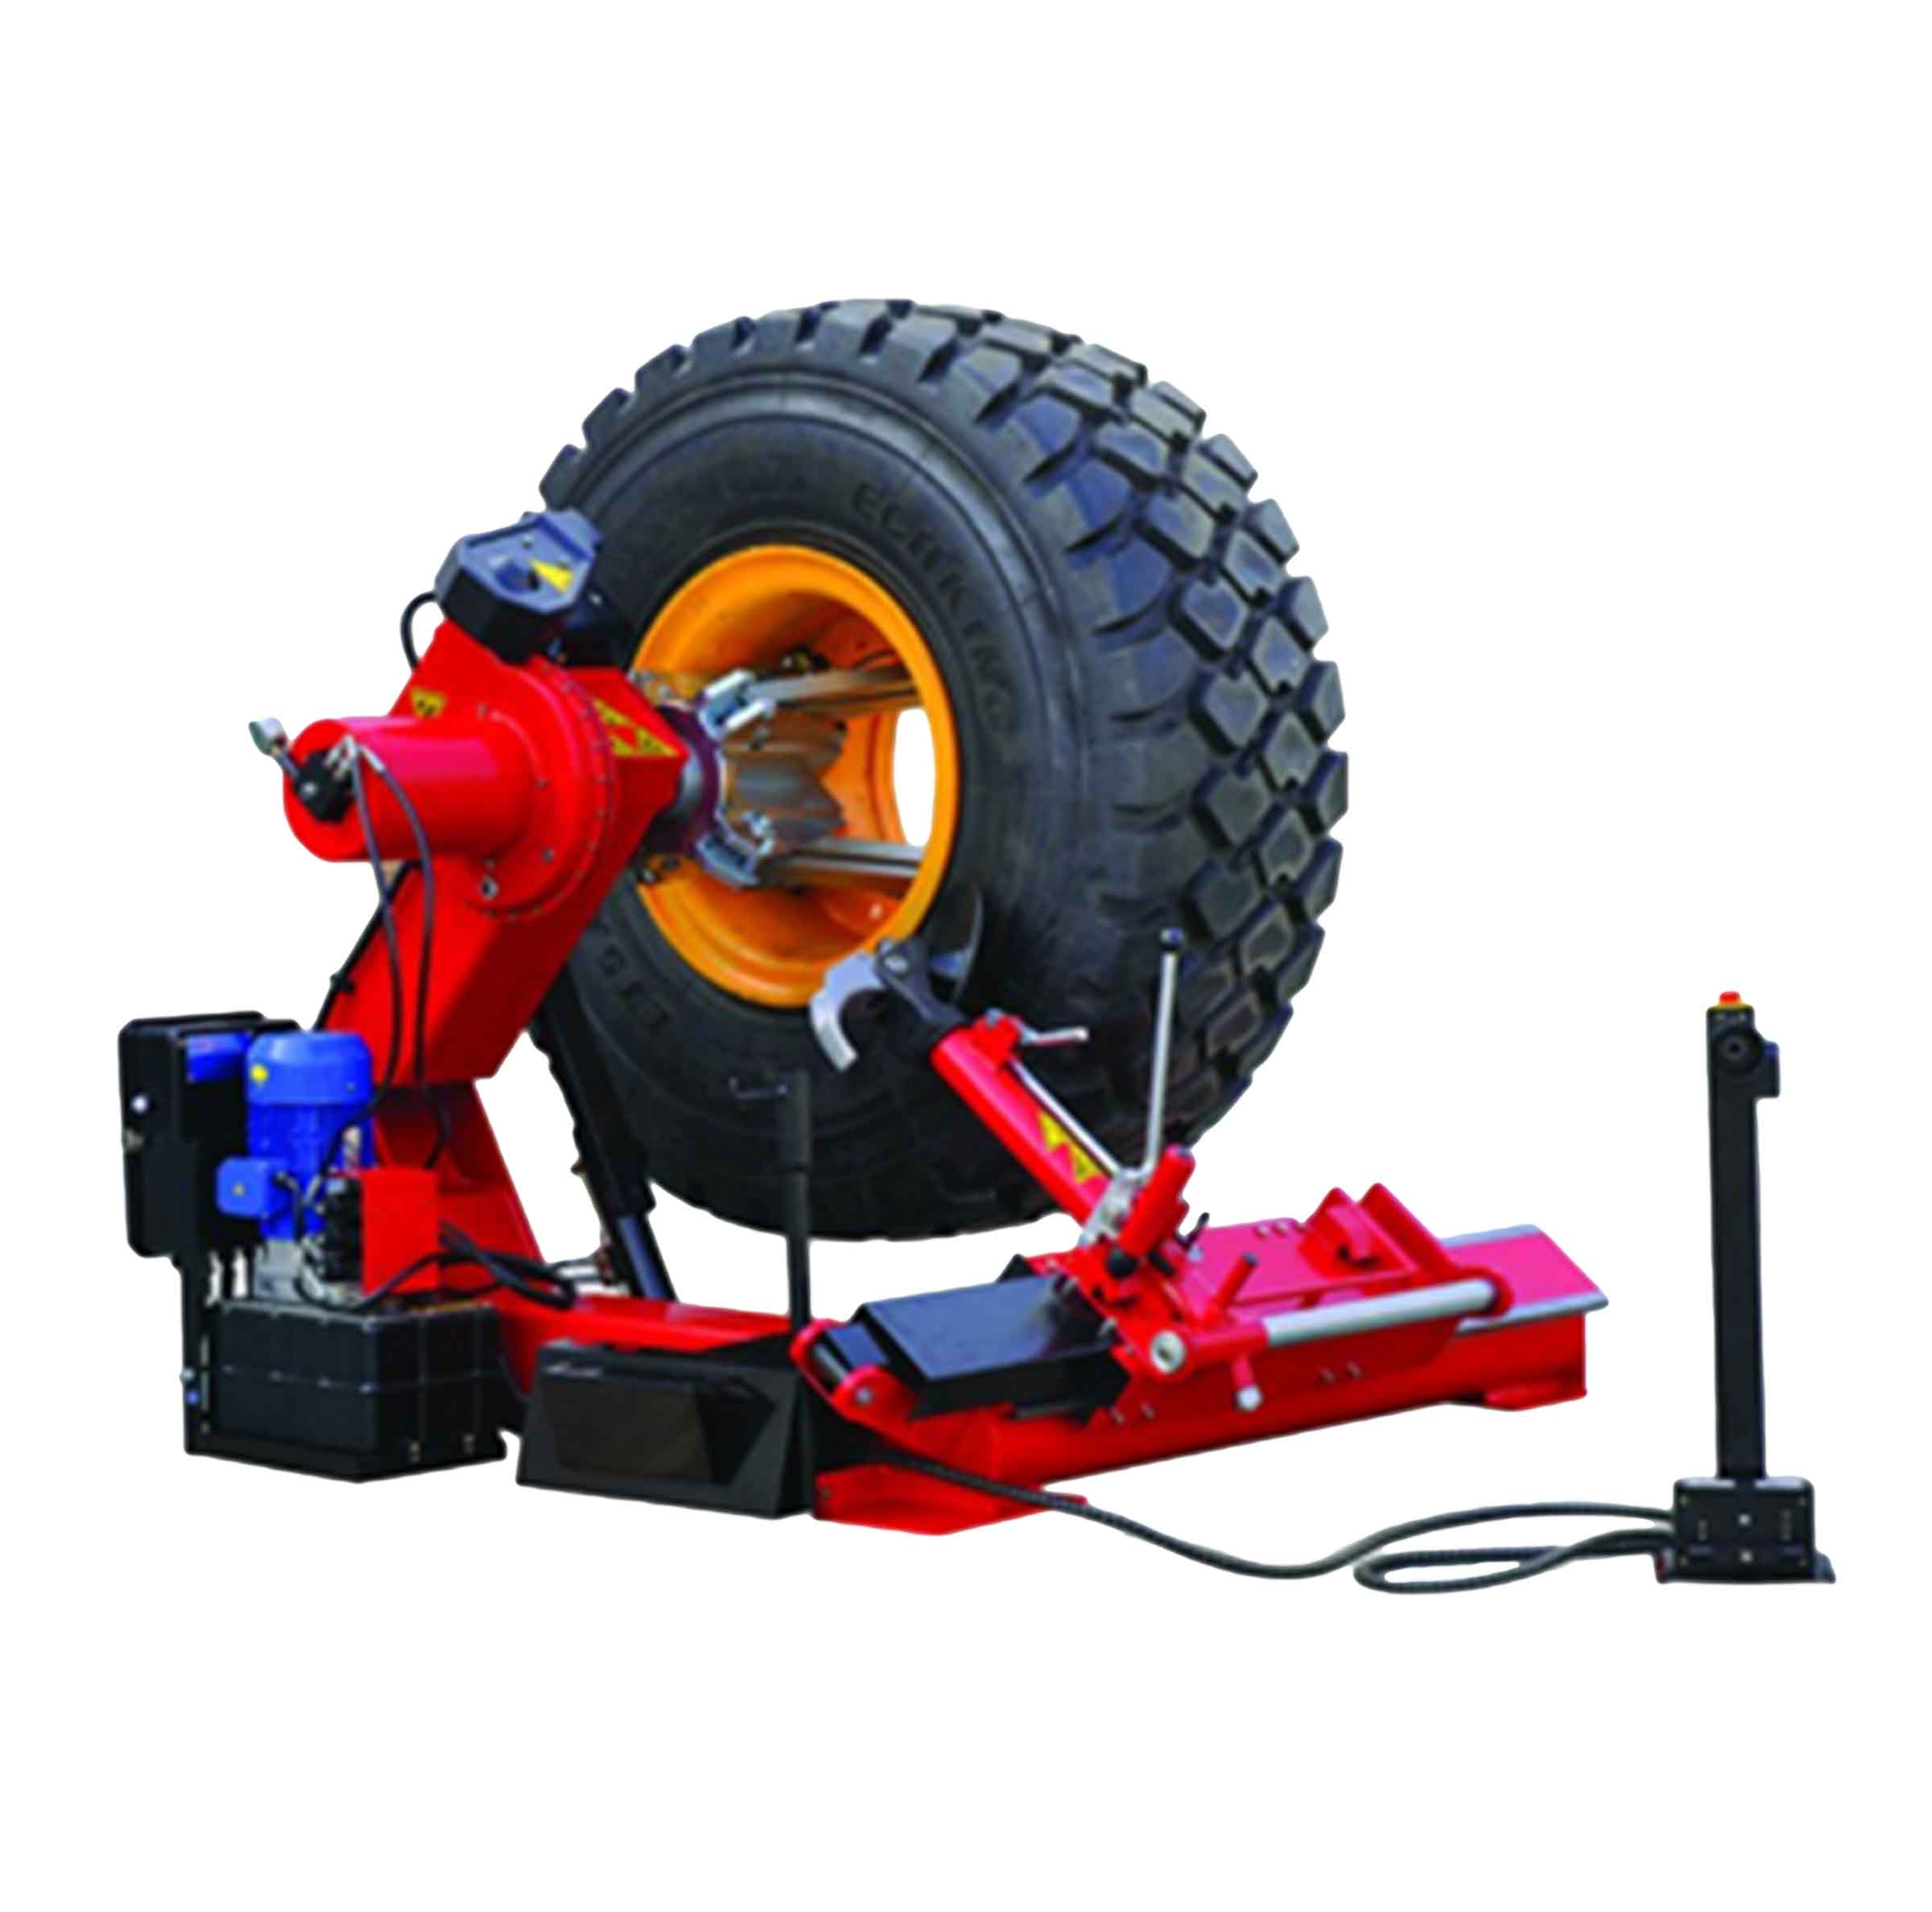 Big Red H/D TRE0598 1PH Tyre Changing Machine. Go On, Do it